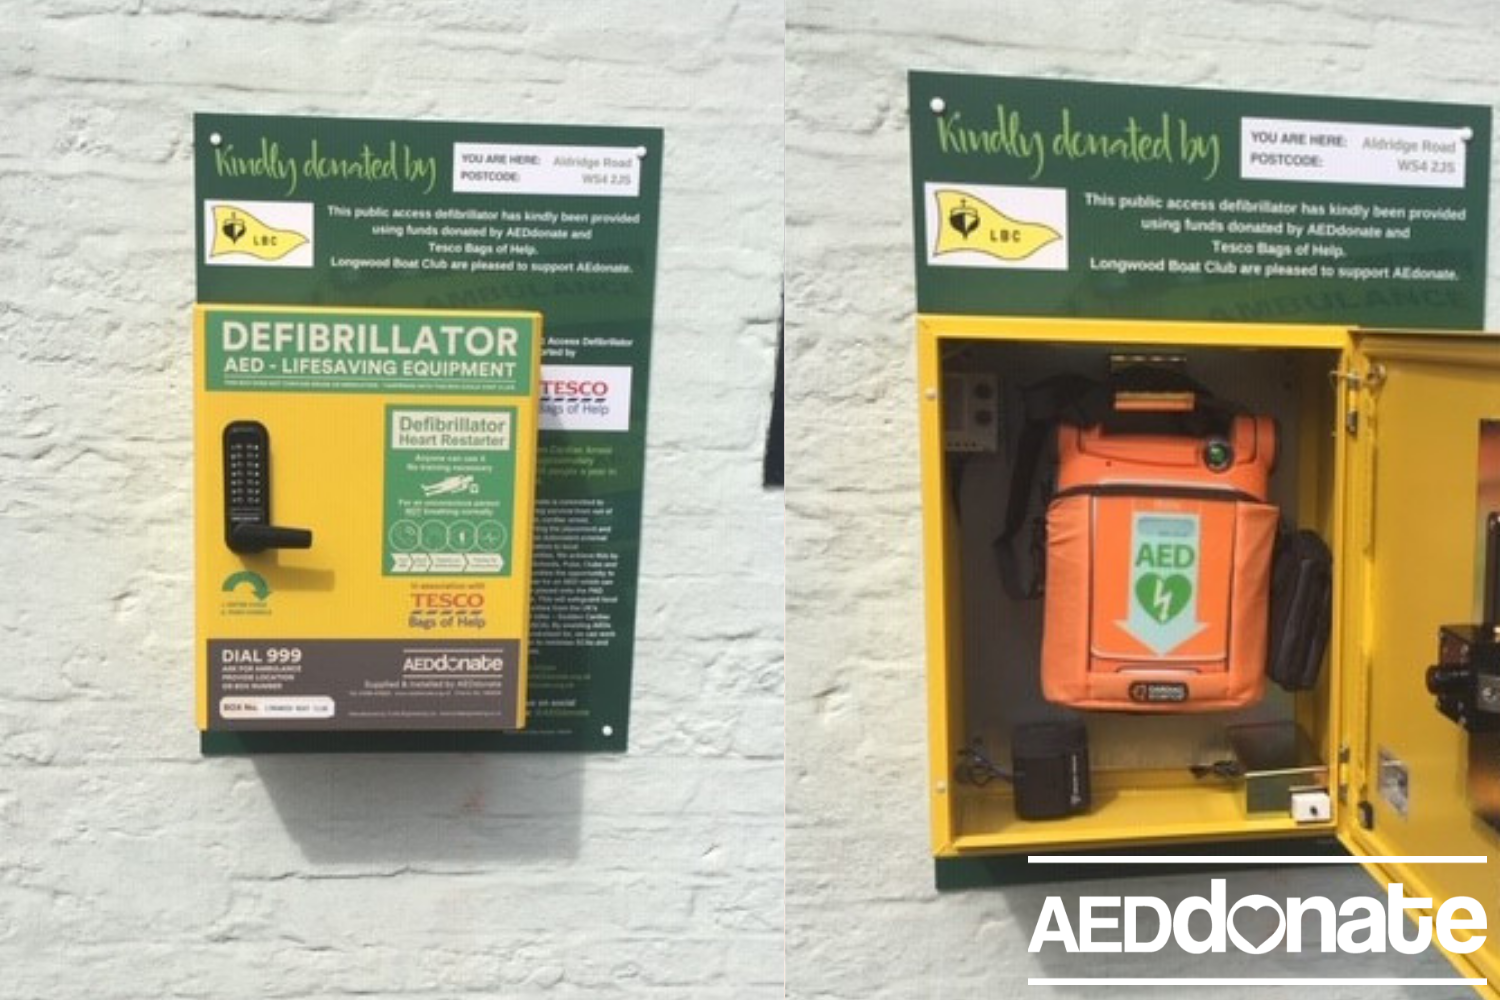 A defibrillator for Longwood Boat Club